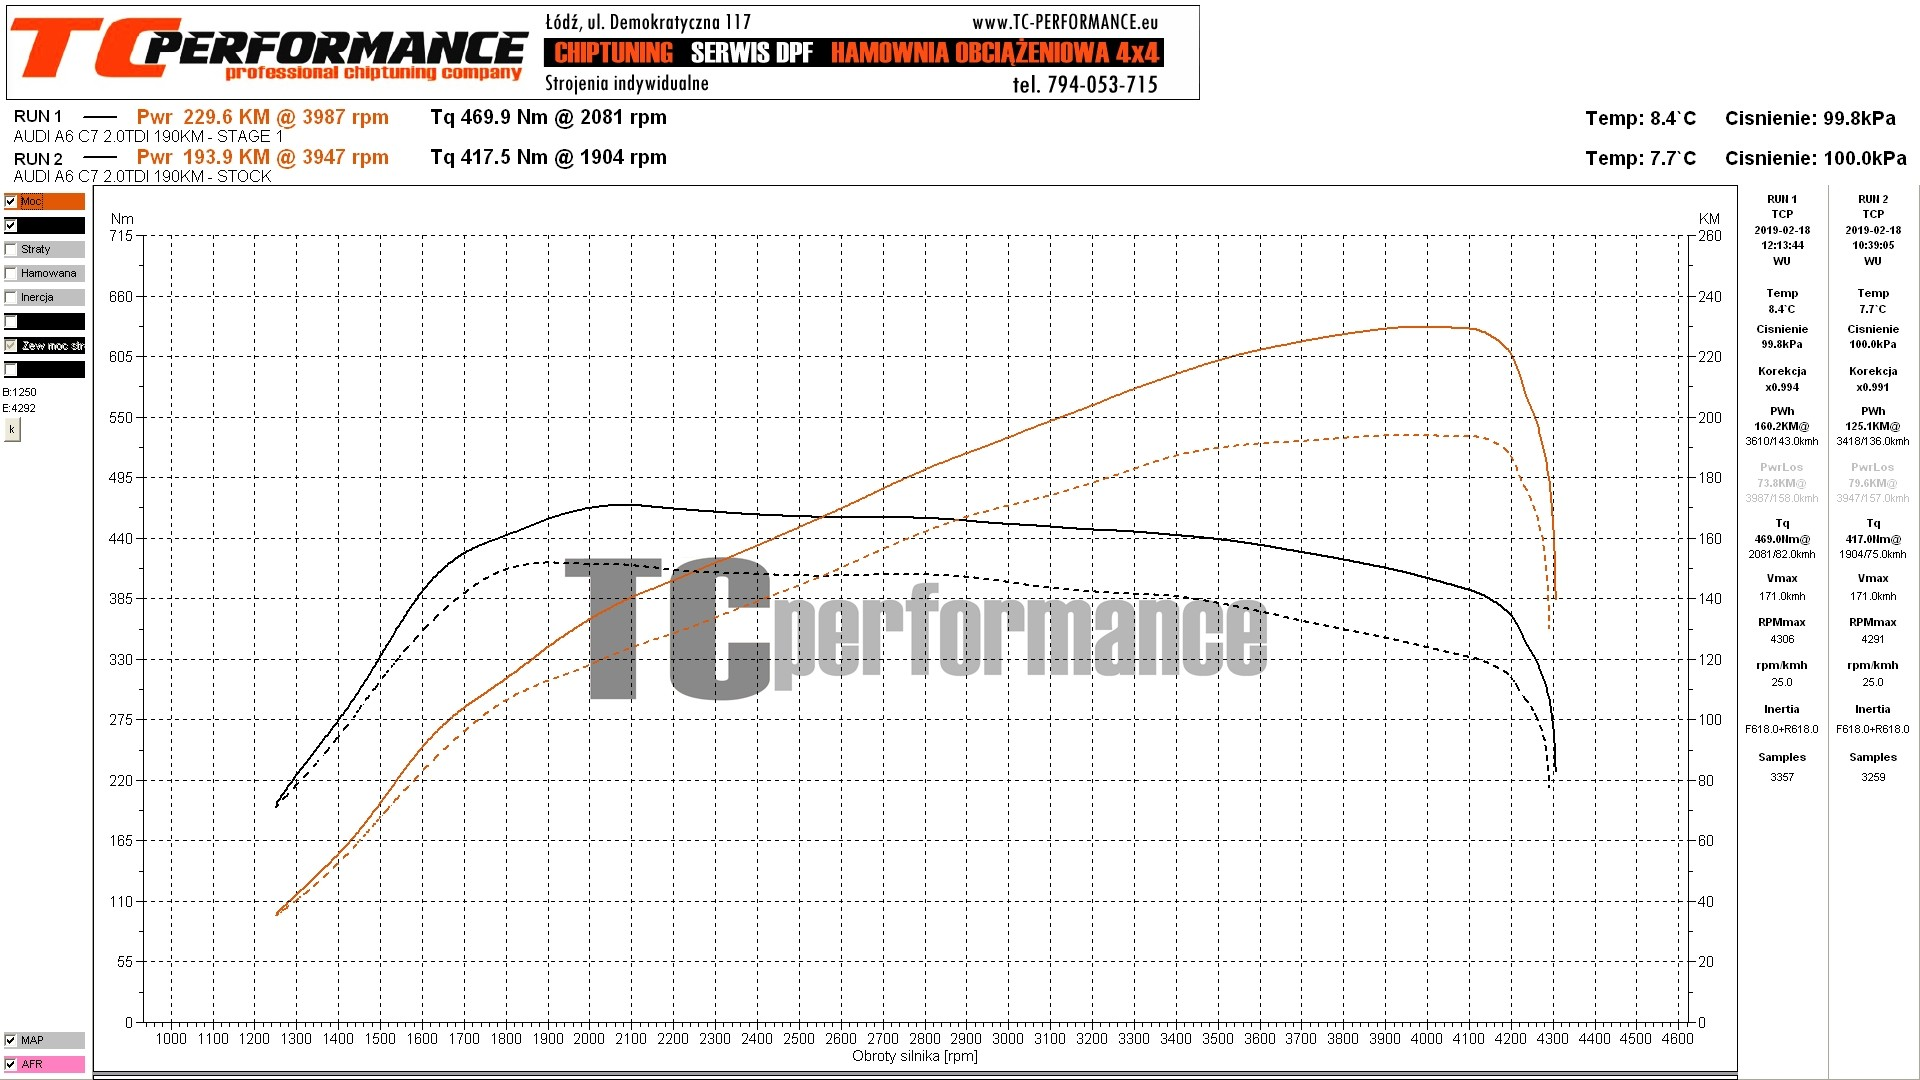 4G Chip Box Tuning ChipPower CR1 for A6 C7 2.0 TDI 190 HP Performance Diesel